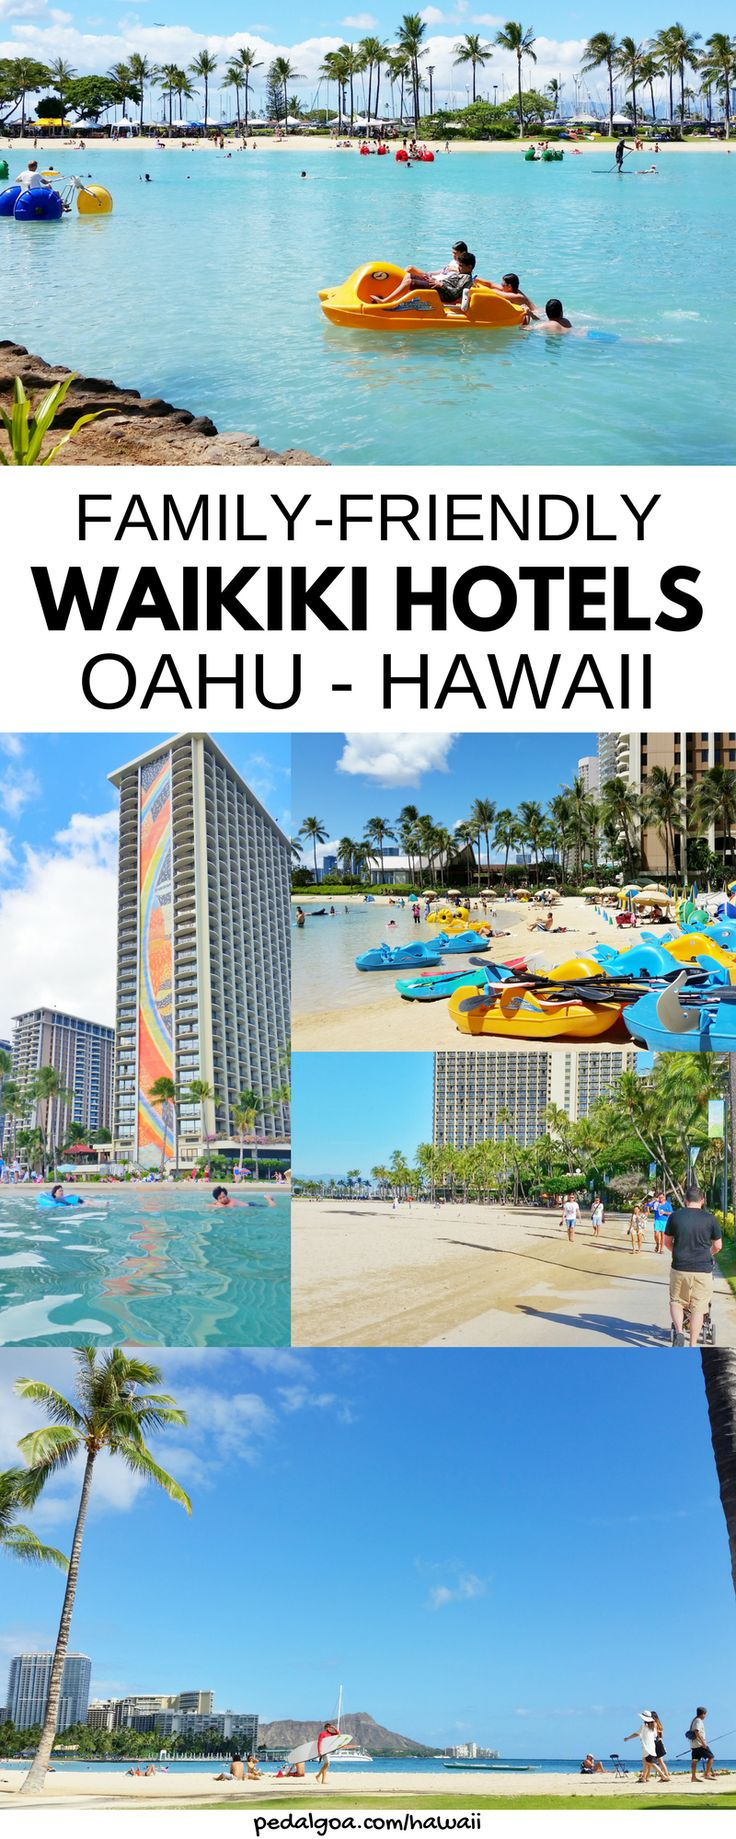 Family-friendly Waikiki hotels in Hawaii: Hilton Hawaiian Village. Family vacation ideas for Waikiki Beach hotels. Even in Hawaii on a budget to save money on cost you can have best resort experience. Kid-friendly activities on Oahu for families, teens. Best Waikiki hotels on Oahu. Water sports rental at lagoon, kayak, surfing lessons, SUP, dinner cruise tours, Friday fireworks! Top US travel destination. Use airbnb Oahu, vacation rental. List: Best things to do on Oahu! #hawaii #oahu…